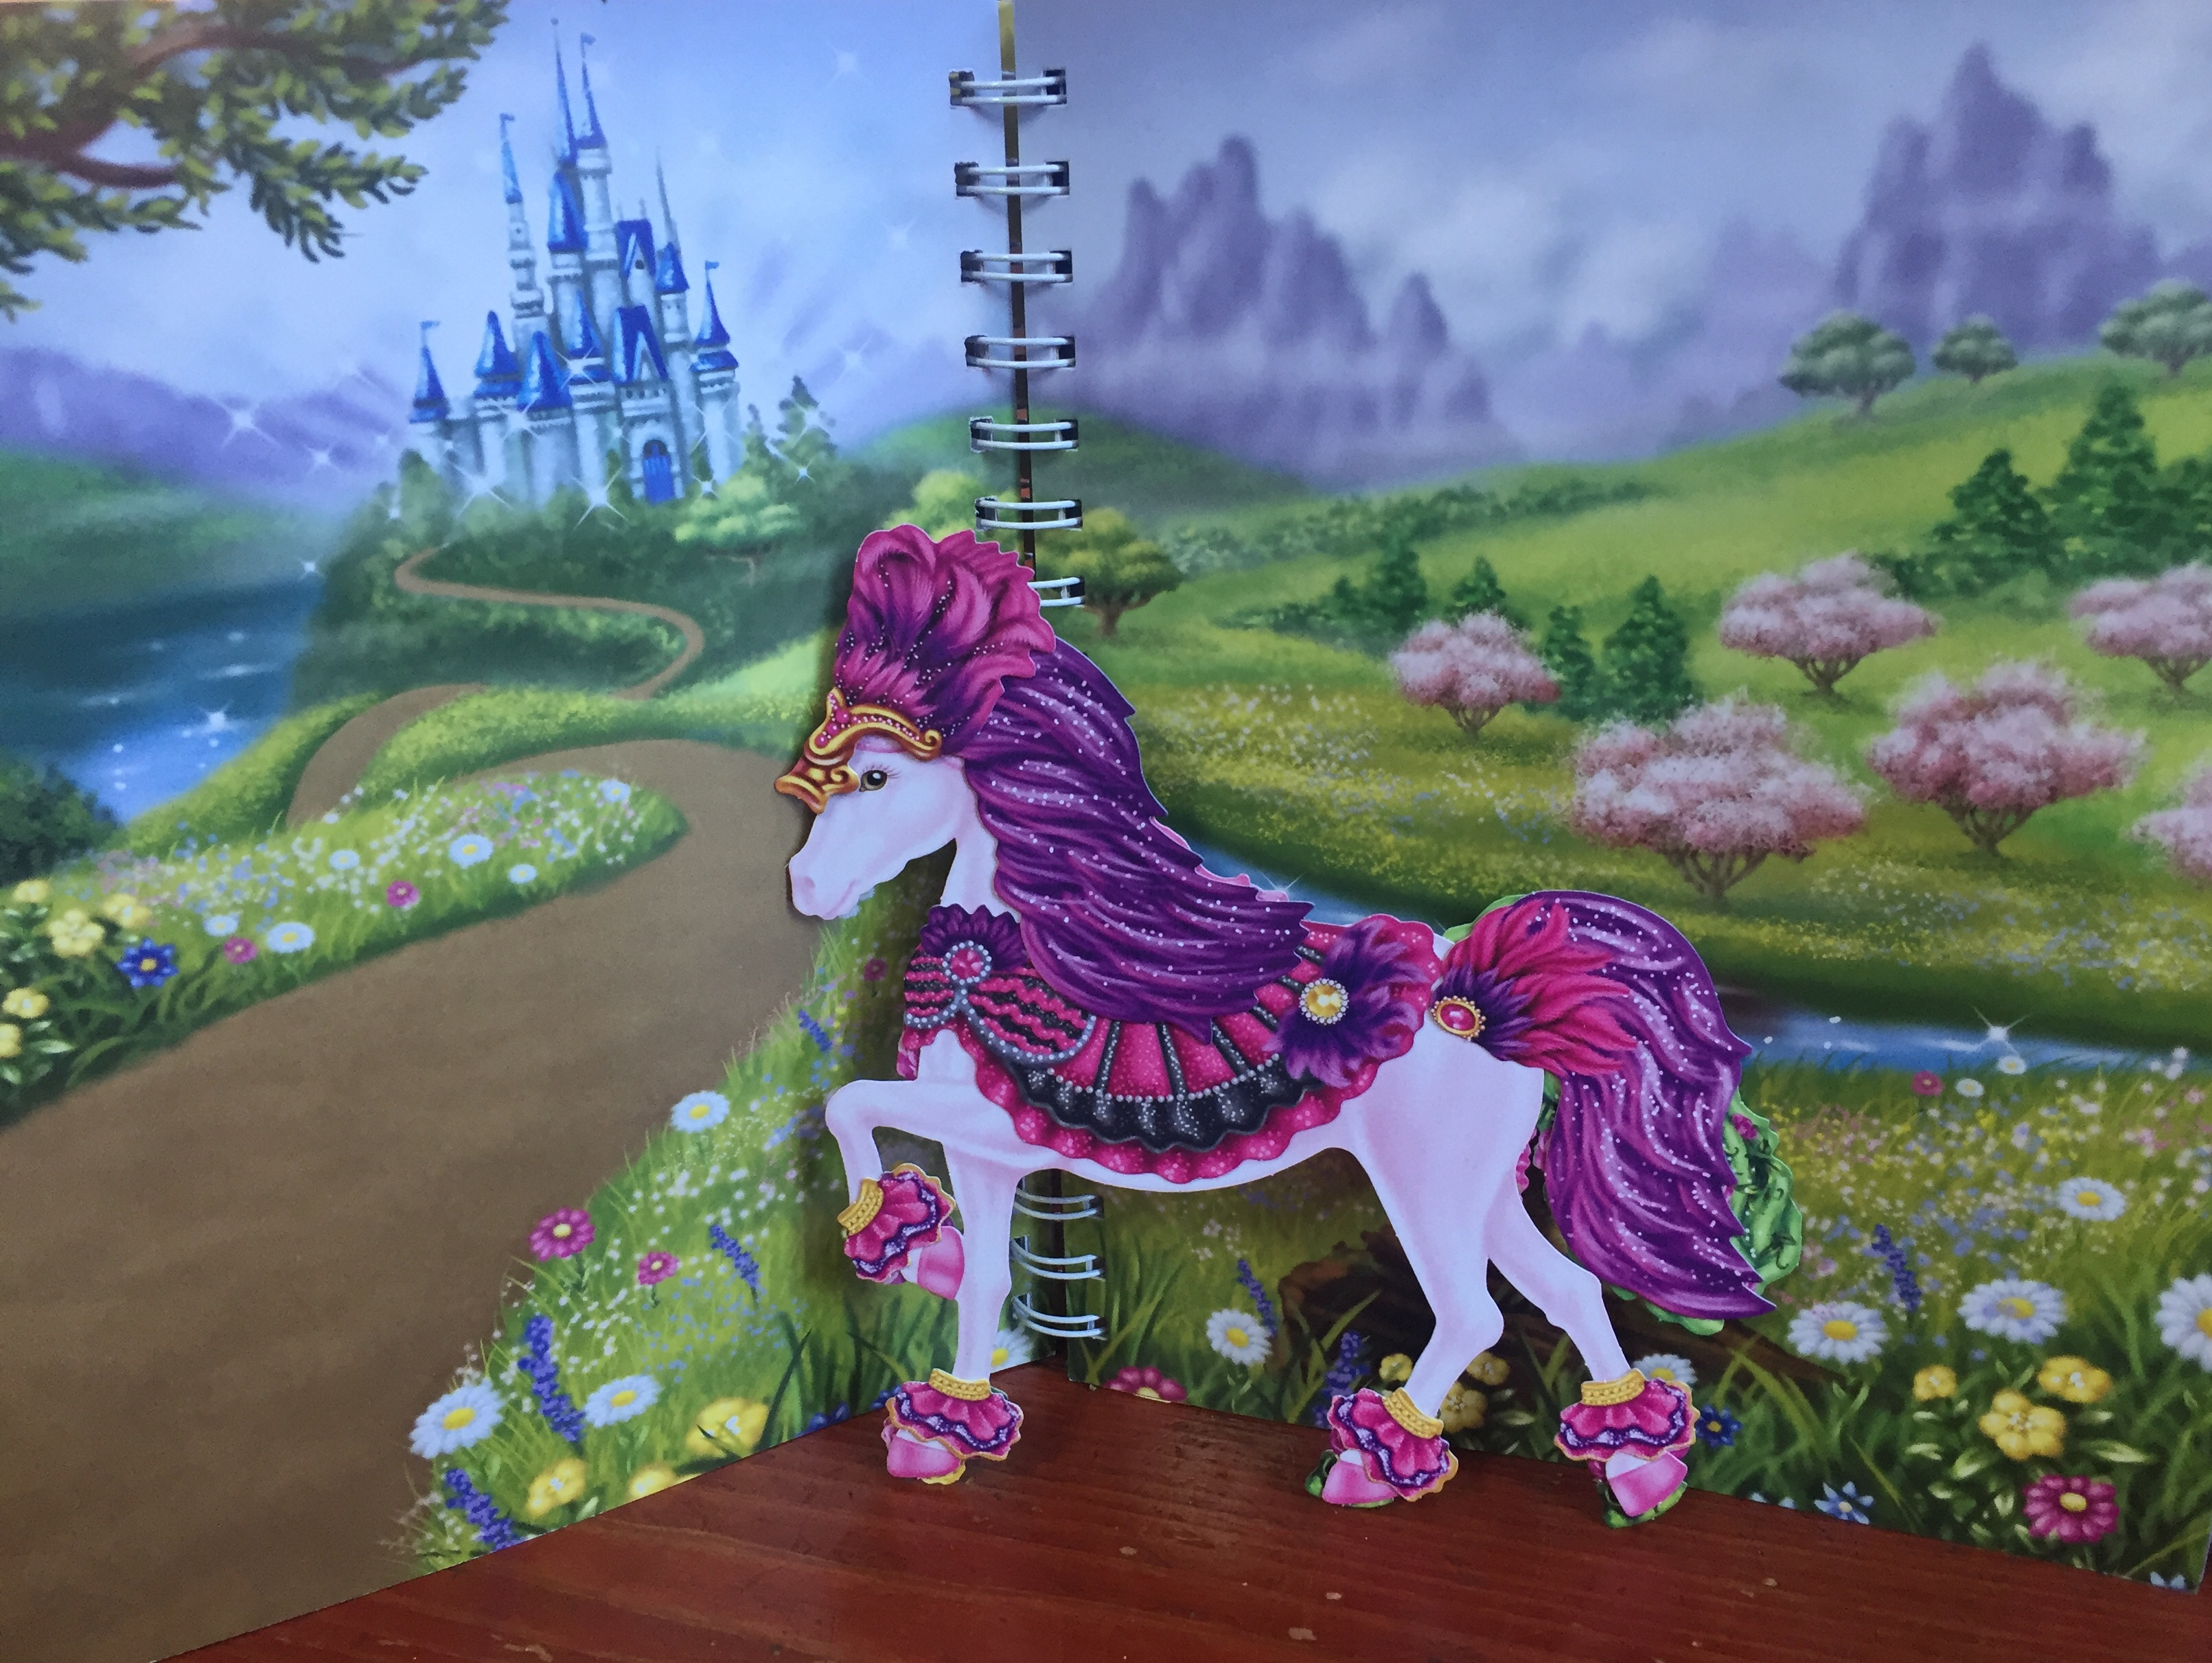 Scene and paper horse dressed up from The Marvelous Book of Magical Horses by Klutz